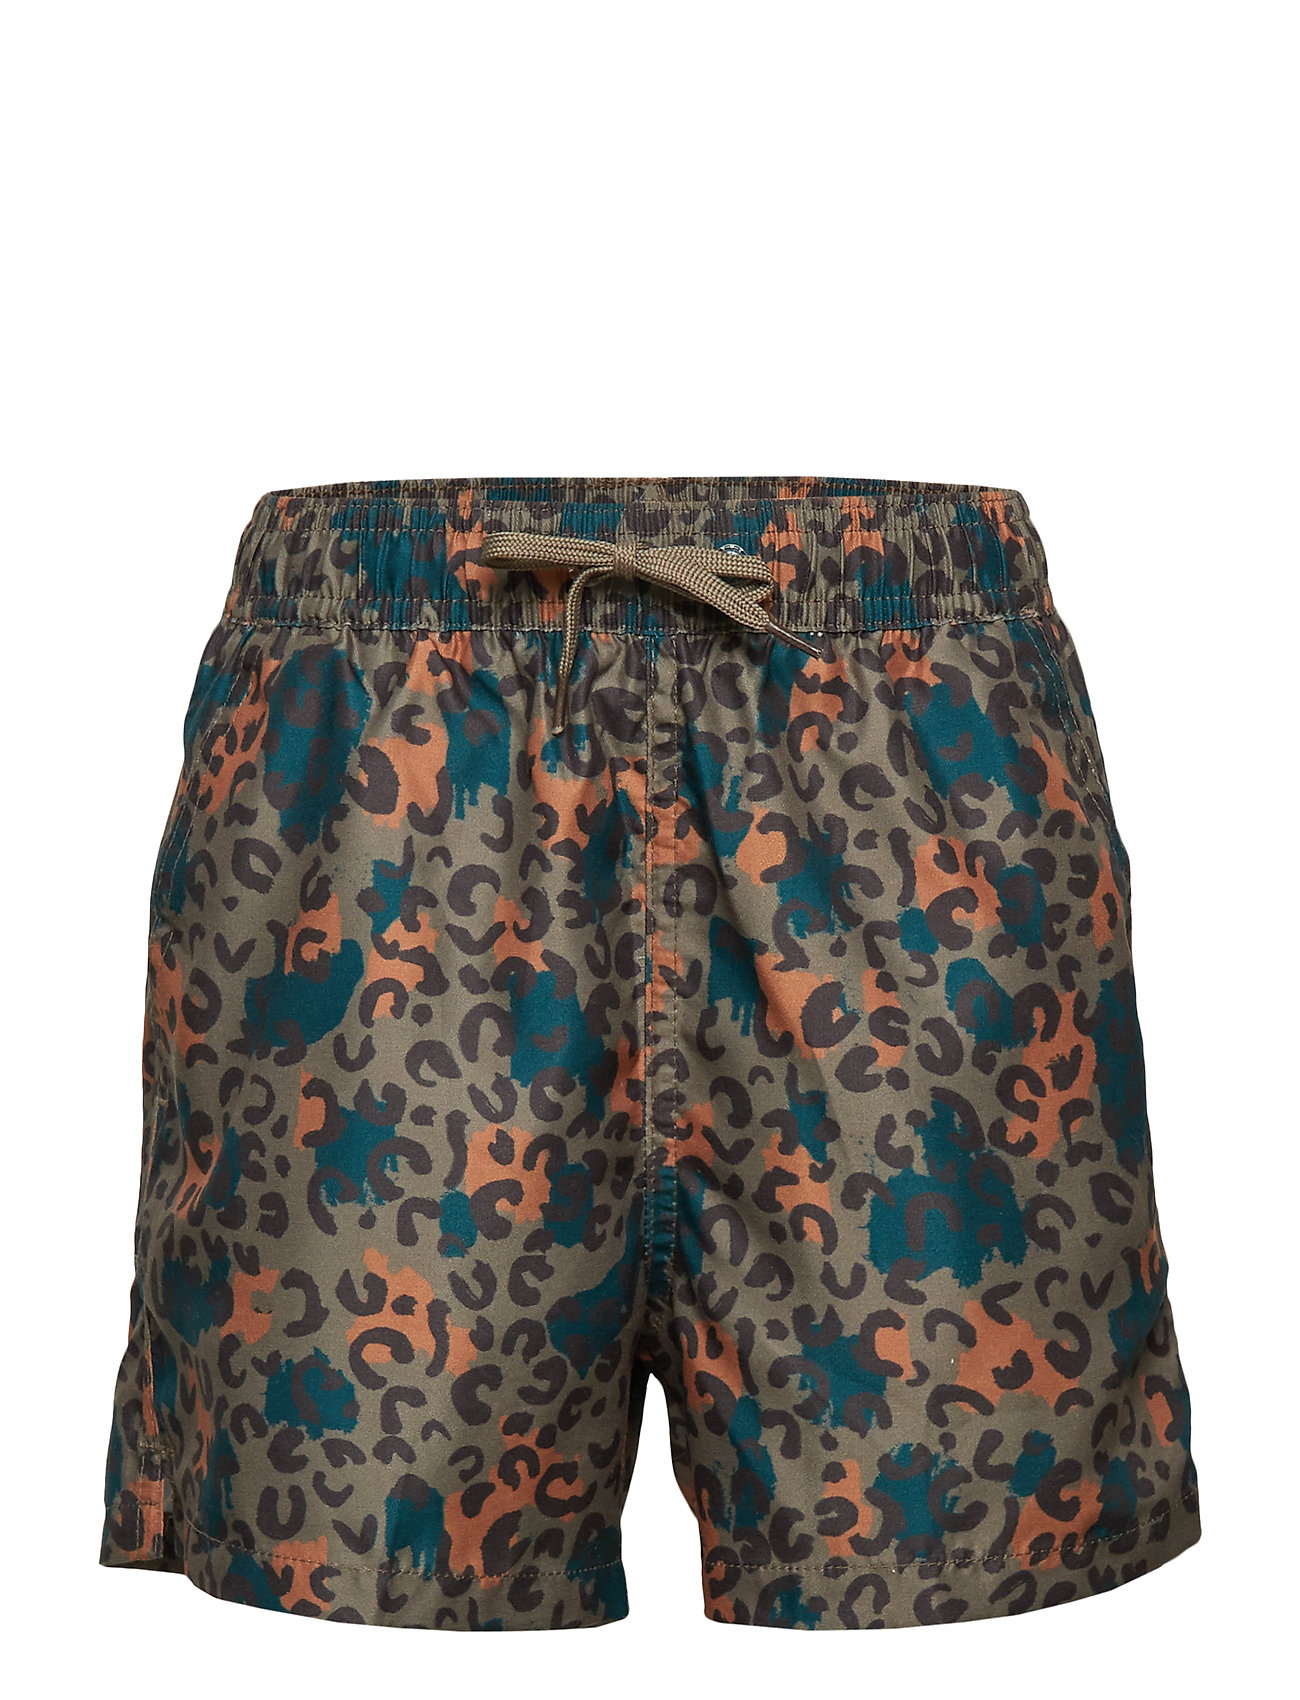 Soft Gallery Dandy Swim Pants - FOSSIL, AOP CAMOLEO SWIM